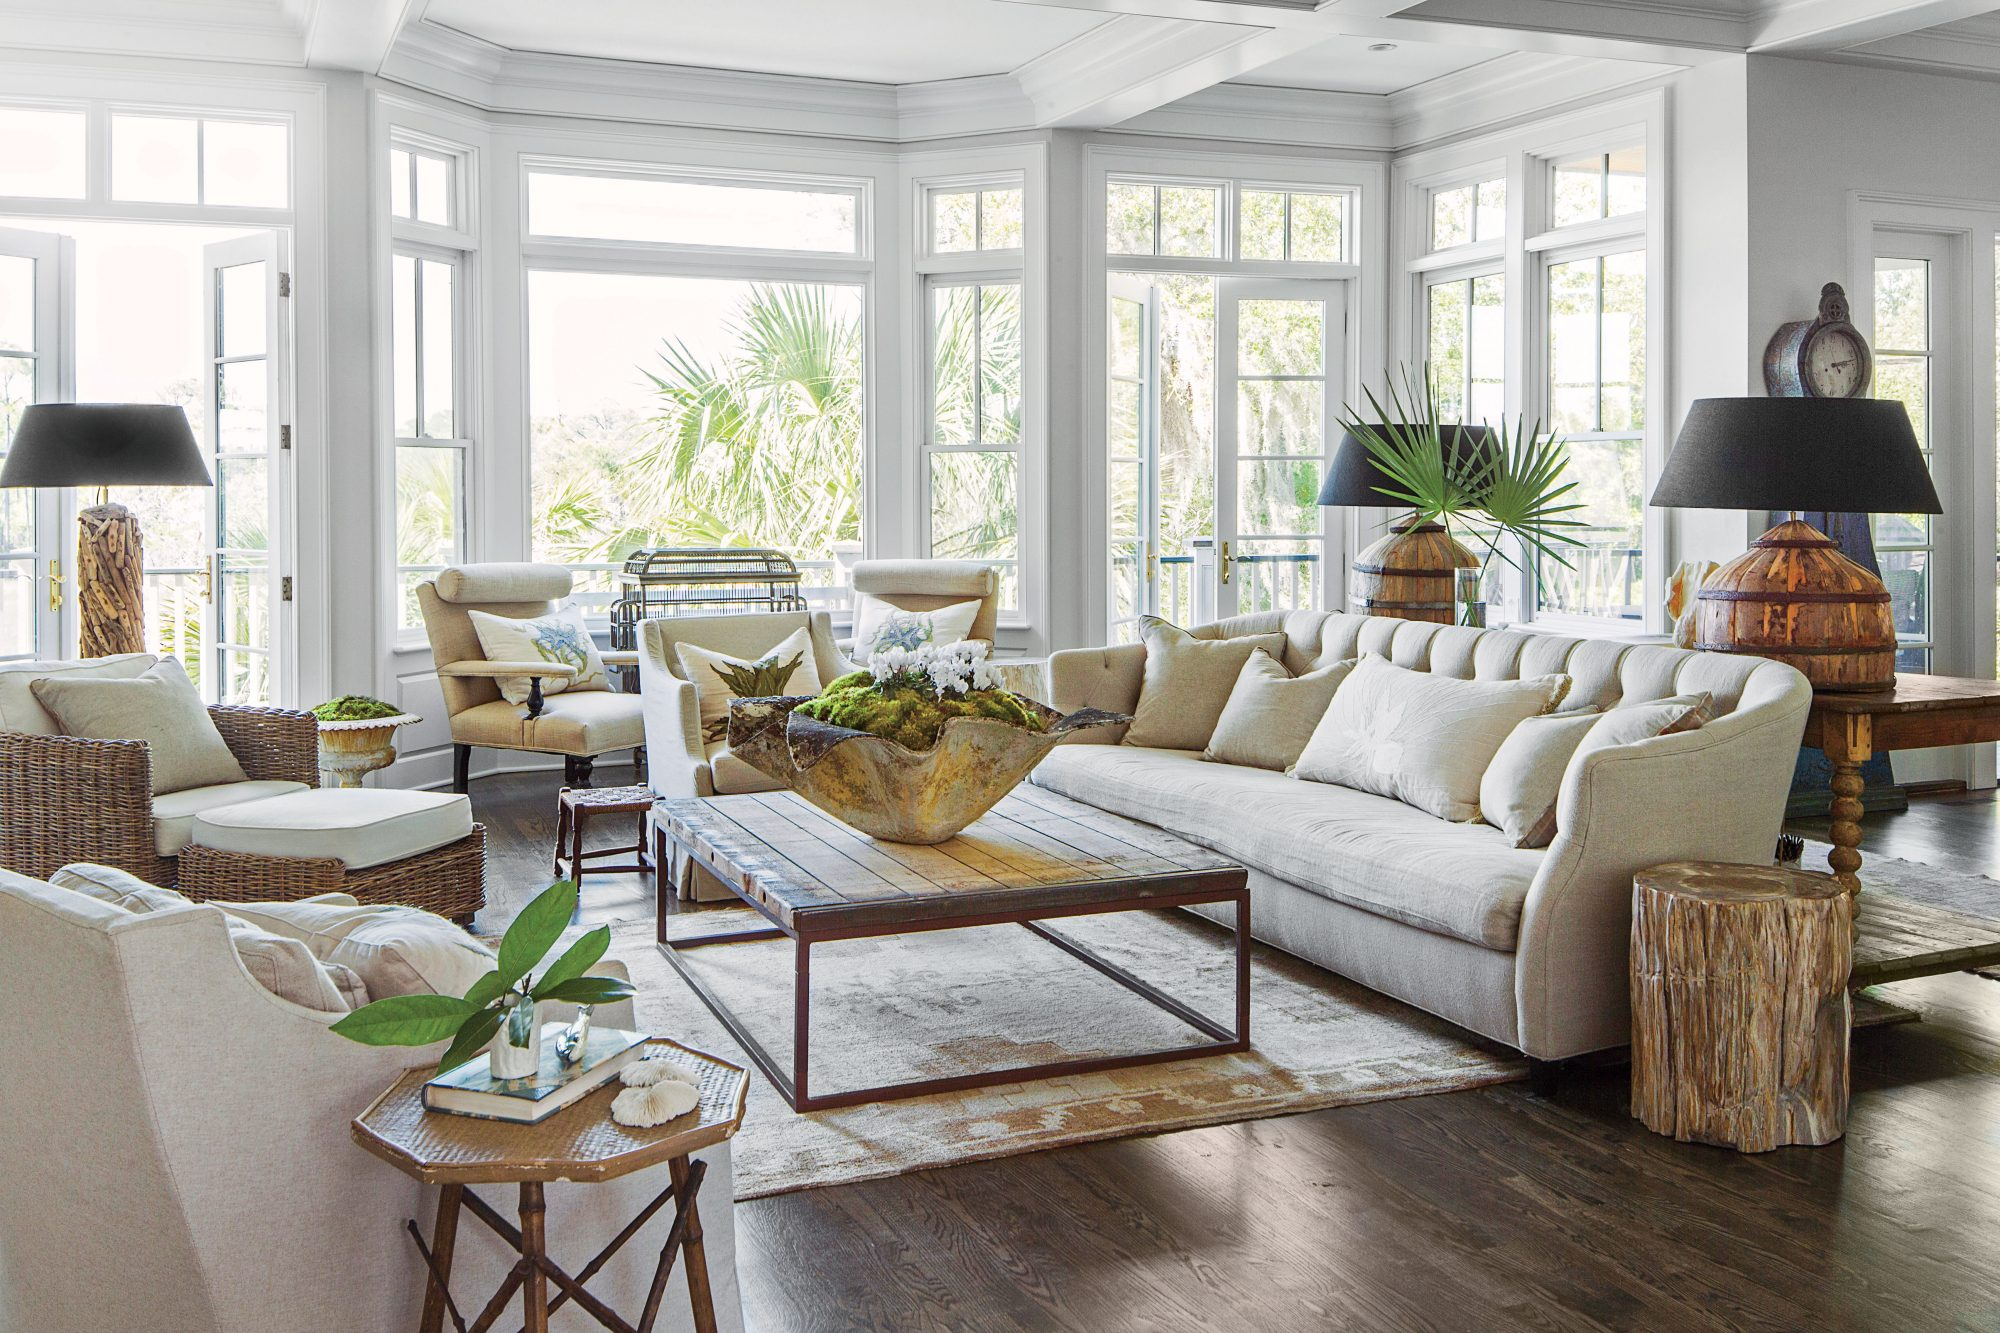 What She Did: Living Room